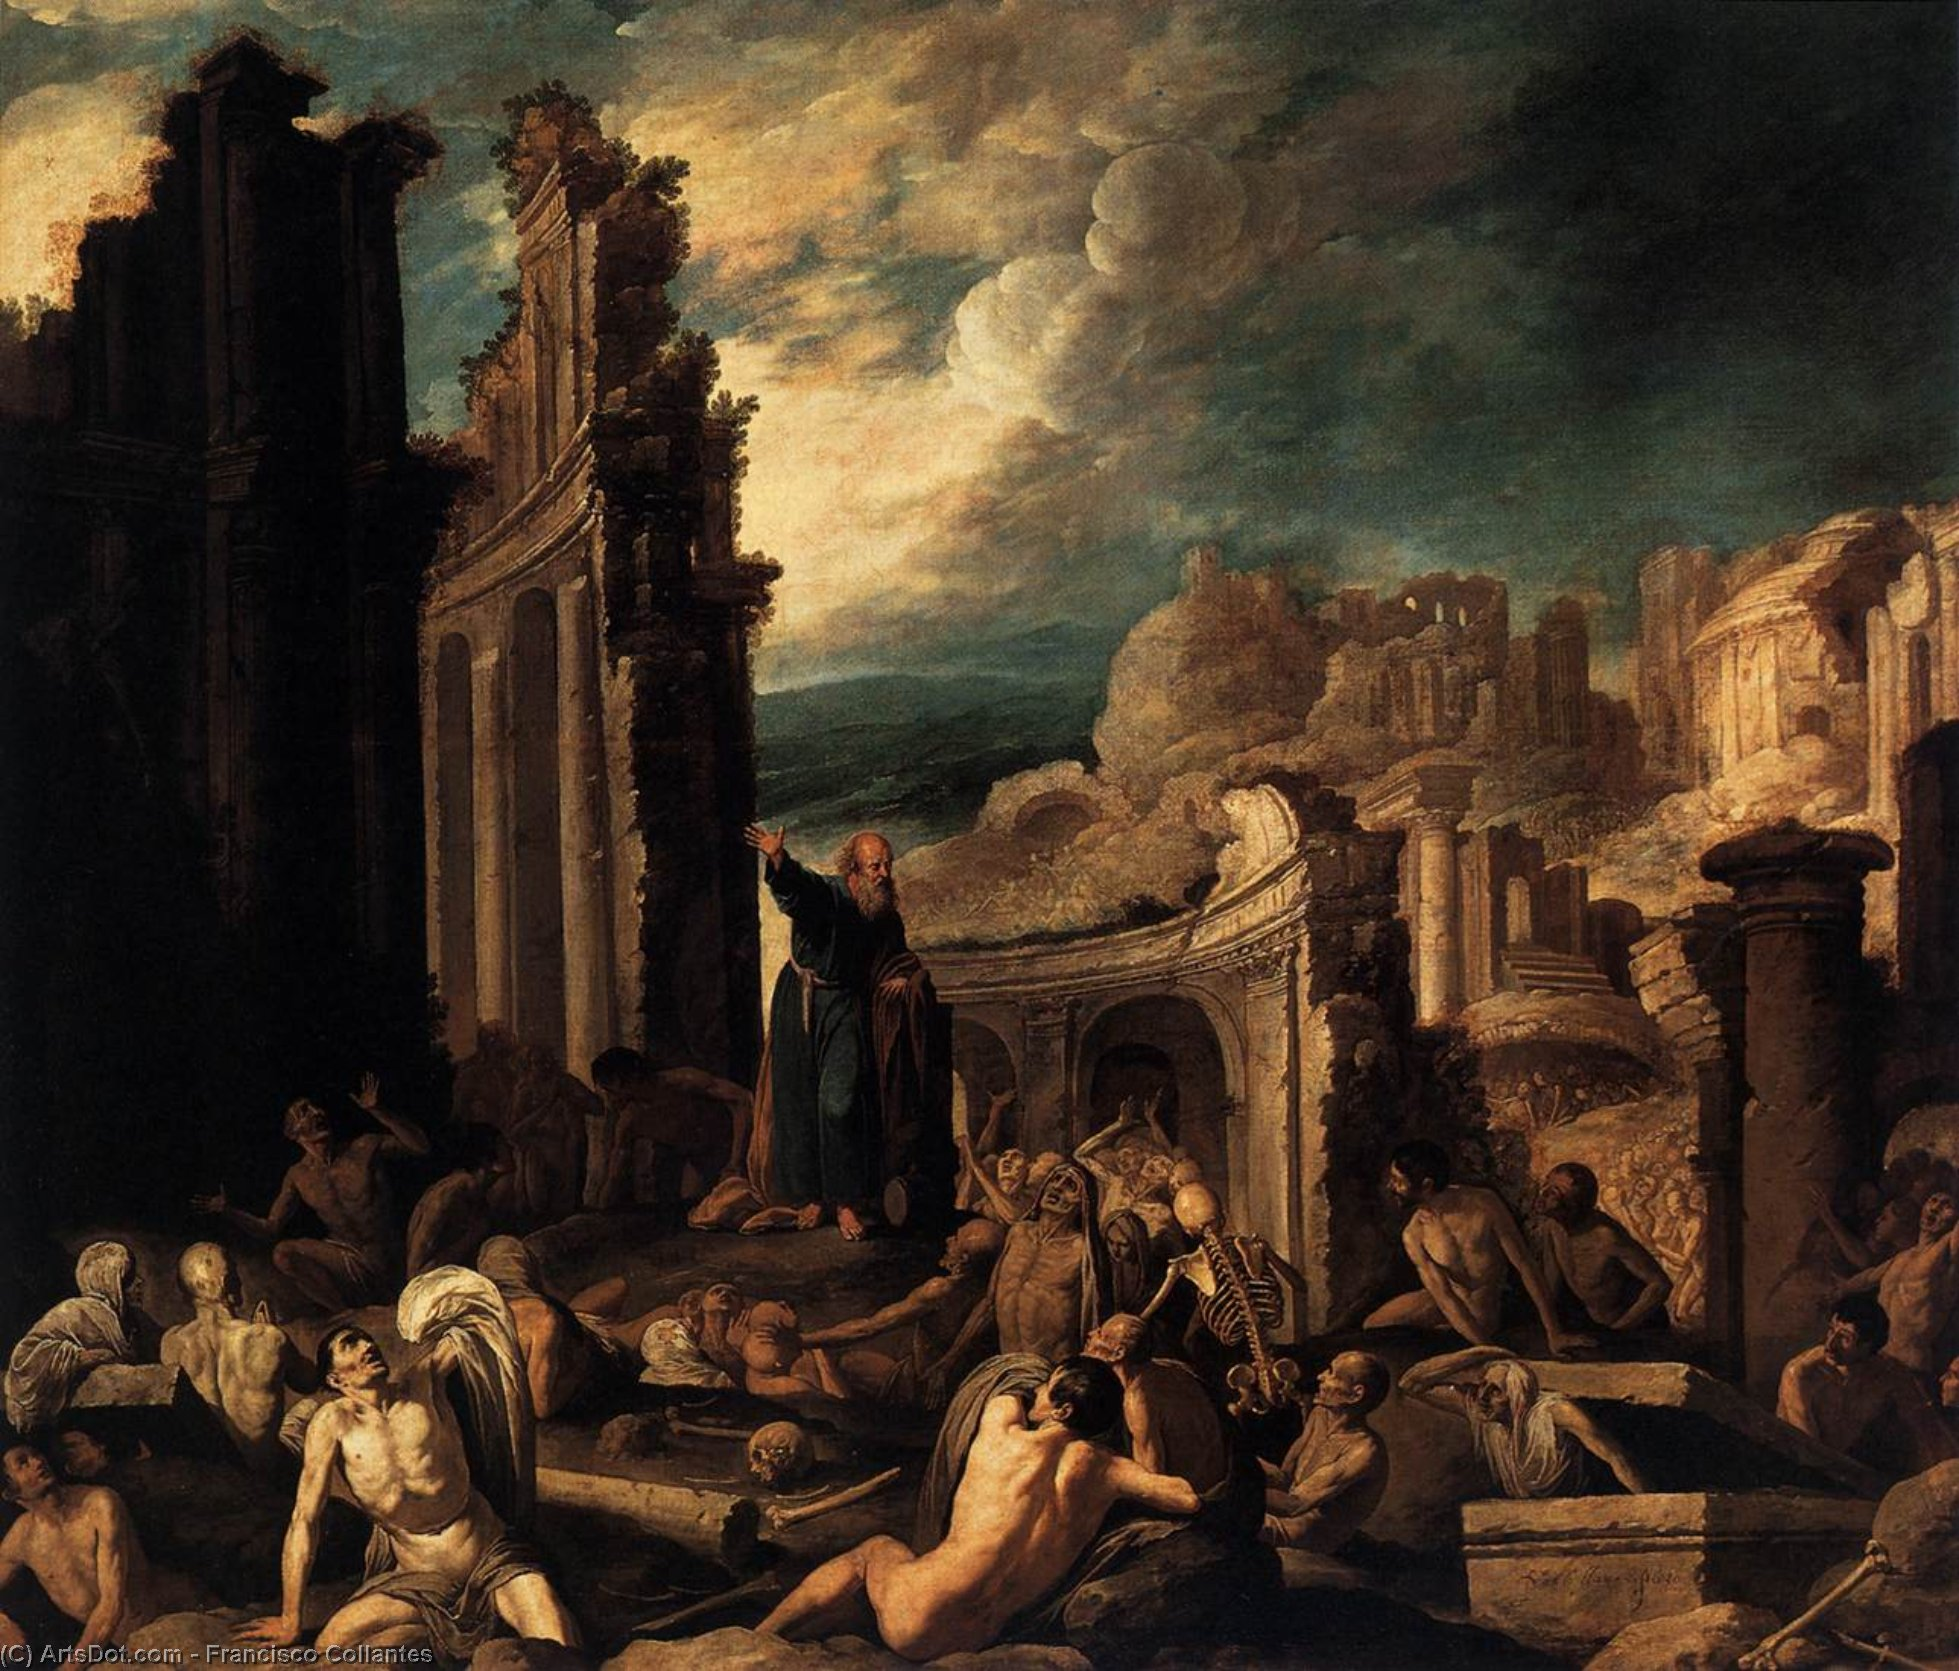 The Vision of Ezekiel, Oil On Canvas by Francisco Collantes (1599-1656, Spain)